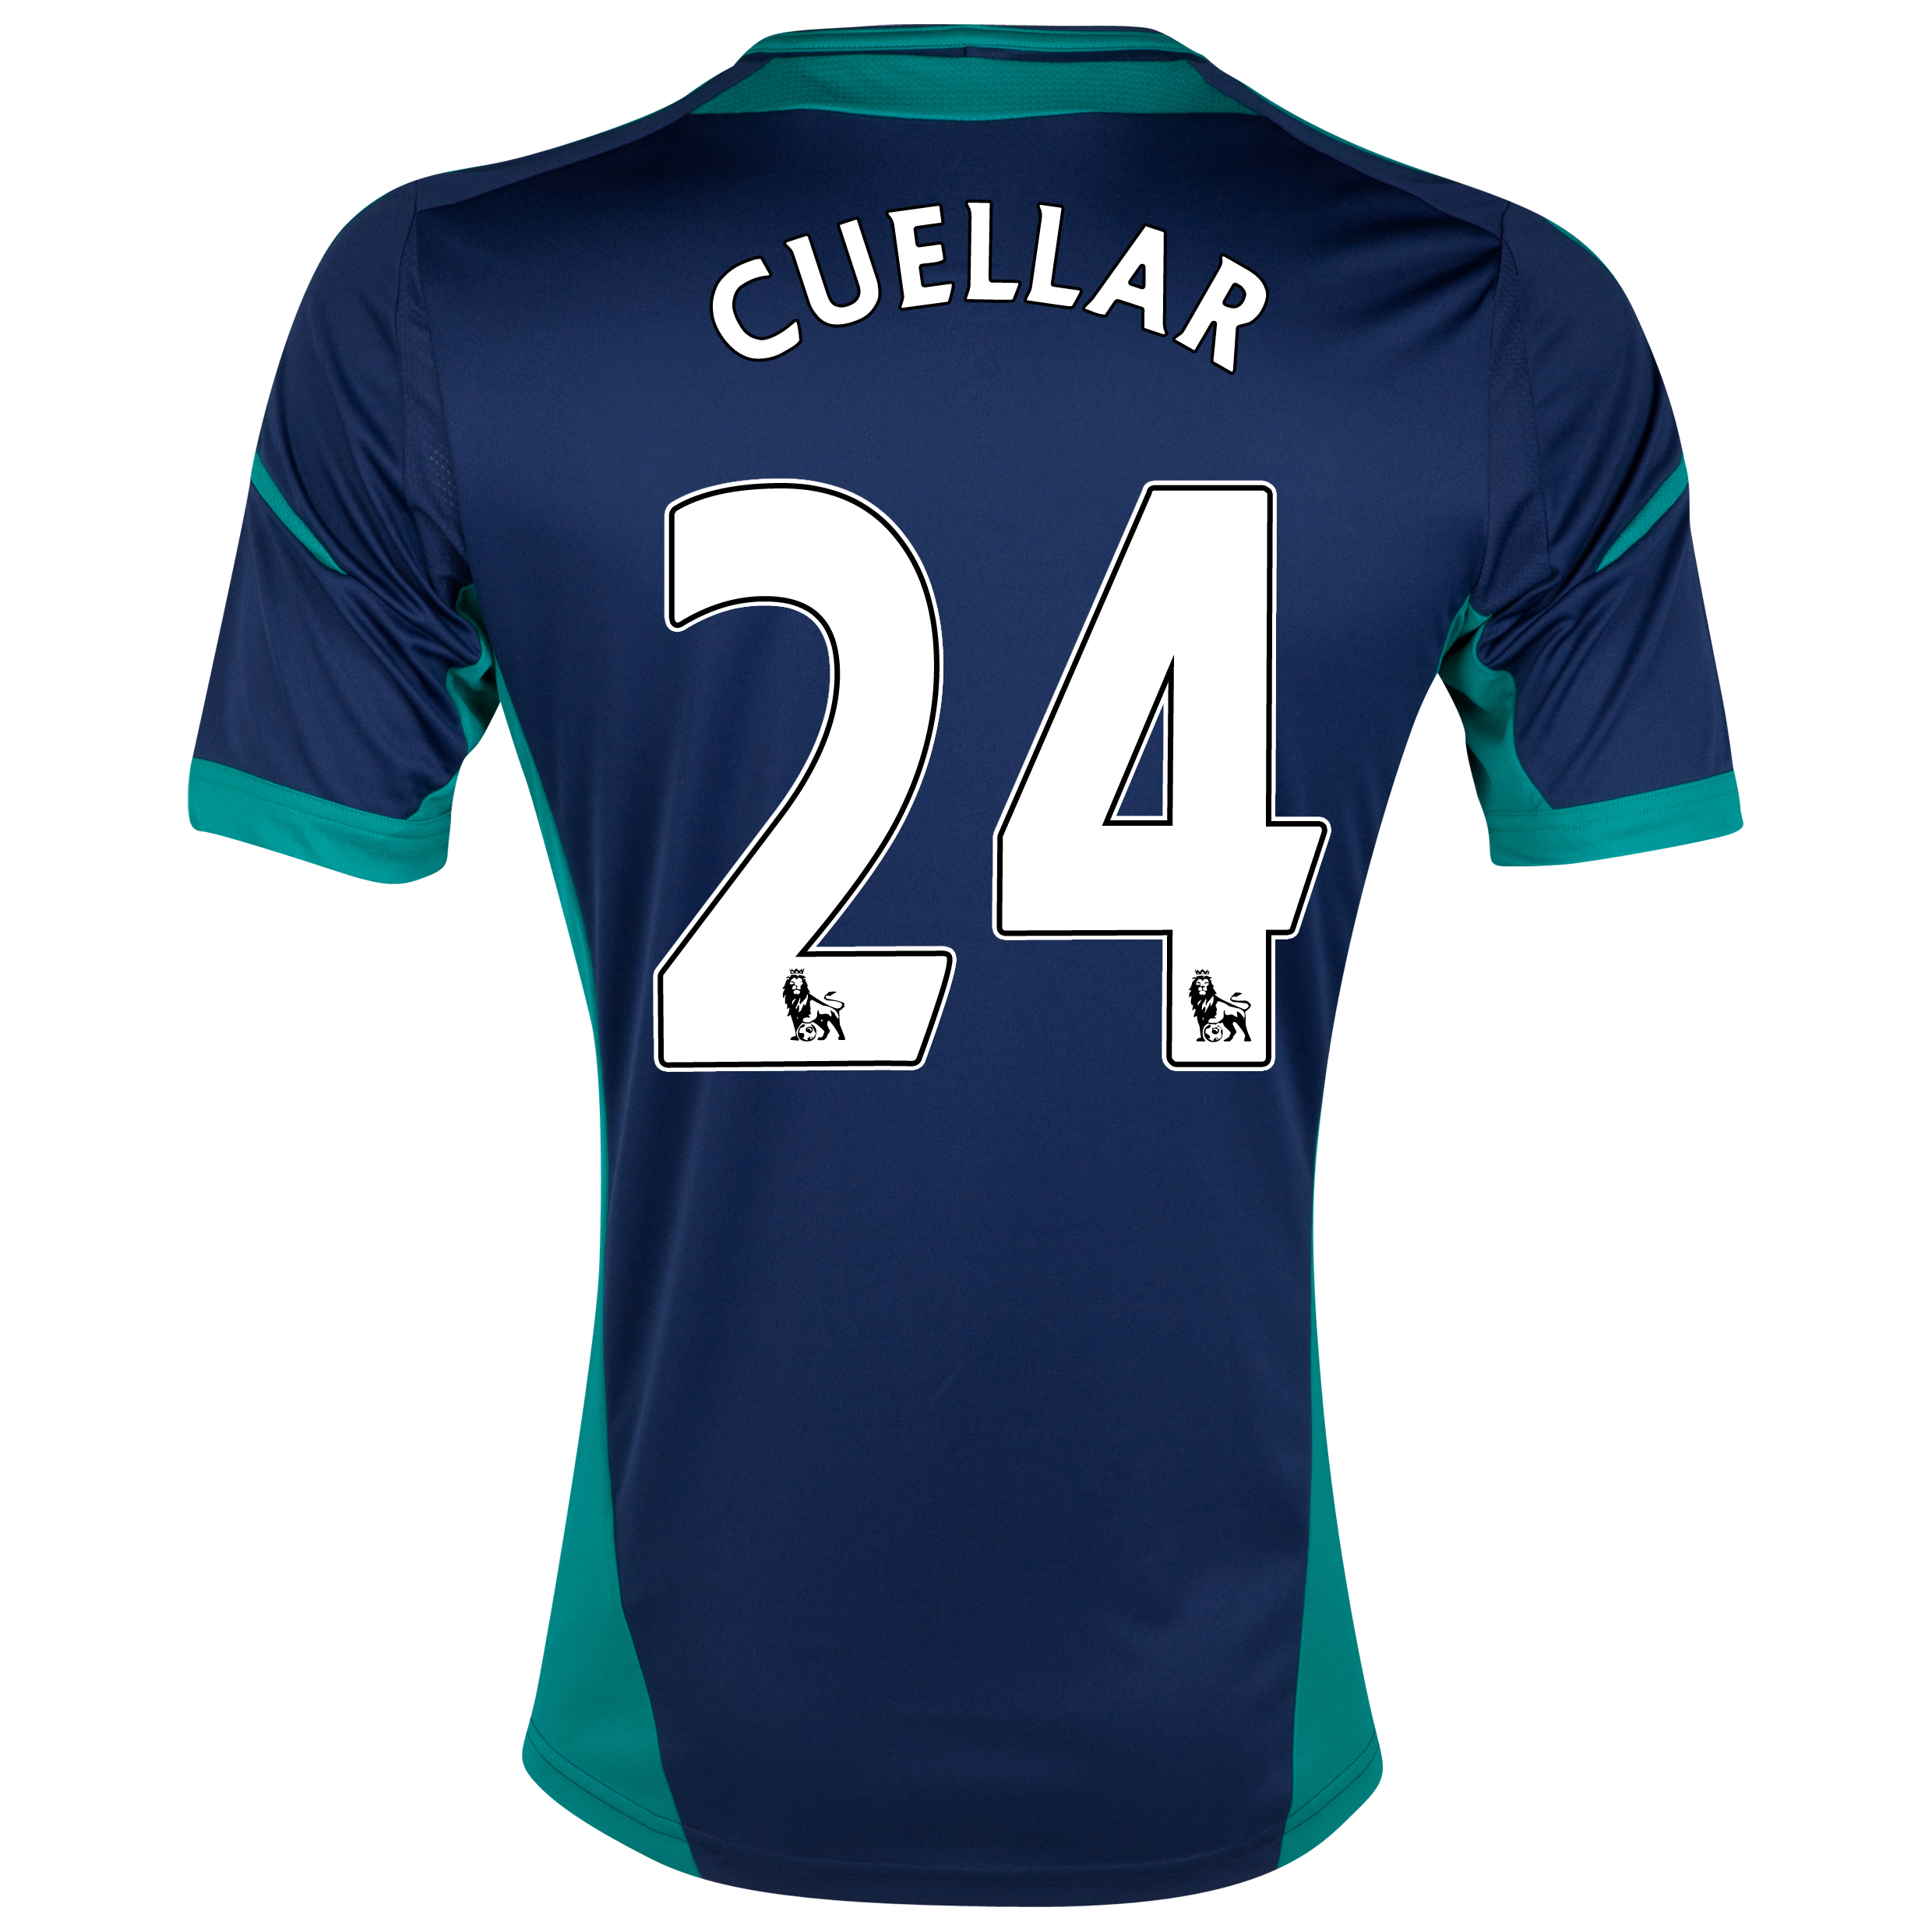 Sunderland Away Shirt 2012/13 with Cuellar 24 printing